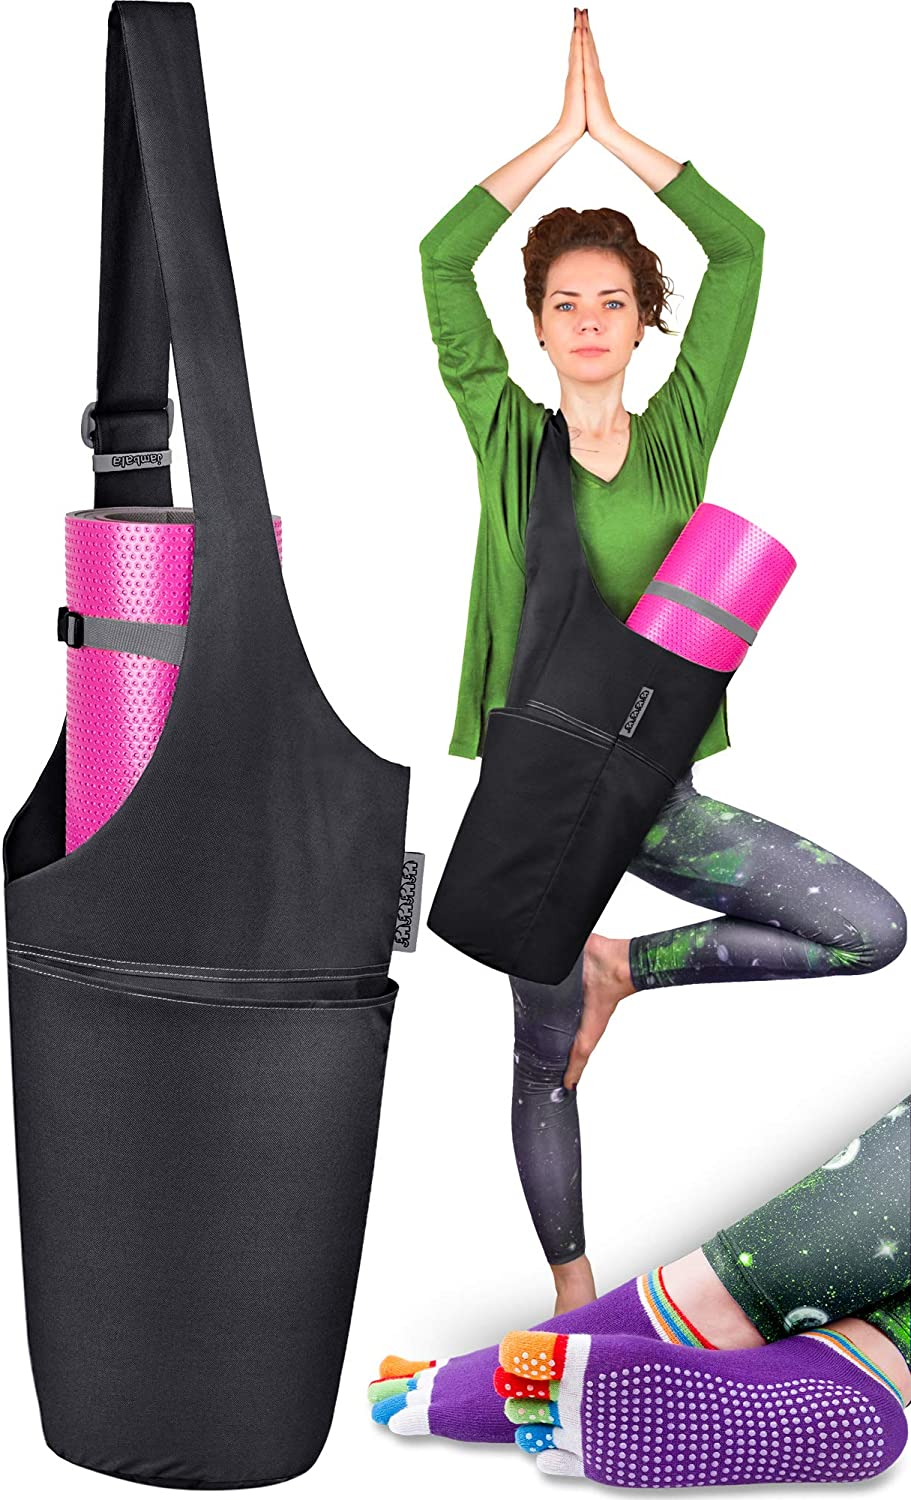 Jambala Large Yoga Mat Bag Carrier and Socks Bundle, 4 Pockets